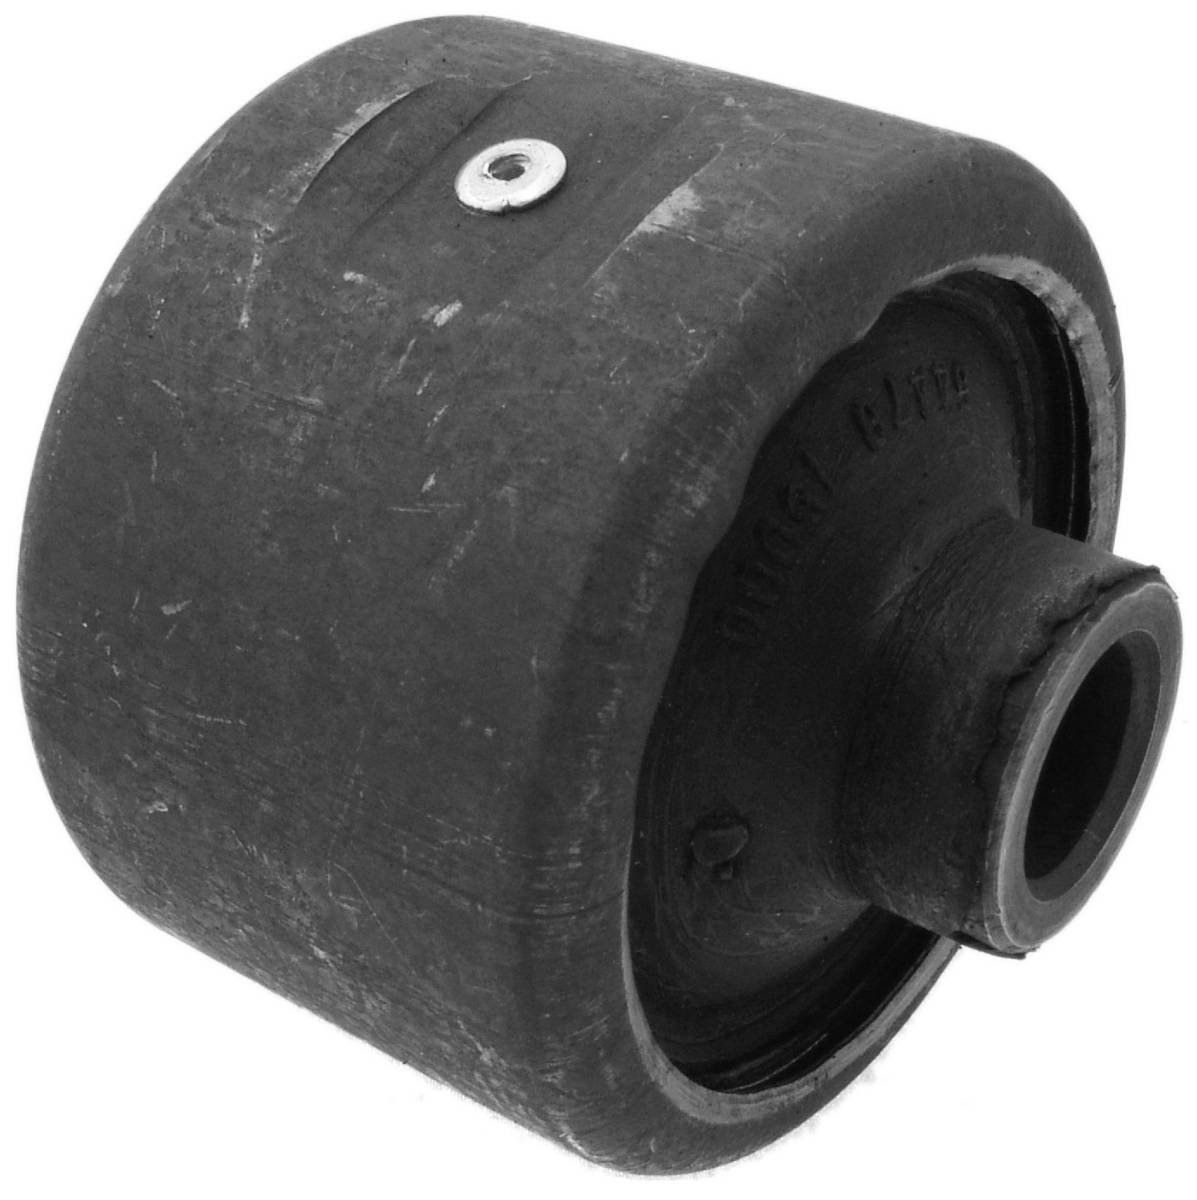 5447665F01 - Arm Bushing Front Torsion For Nissan Febest